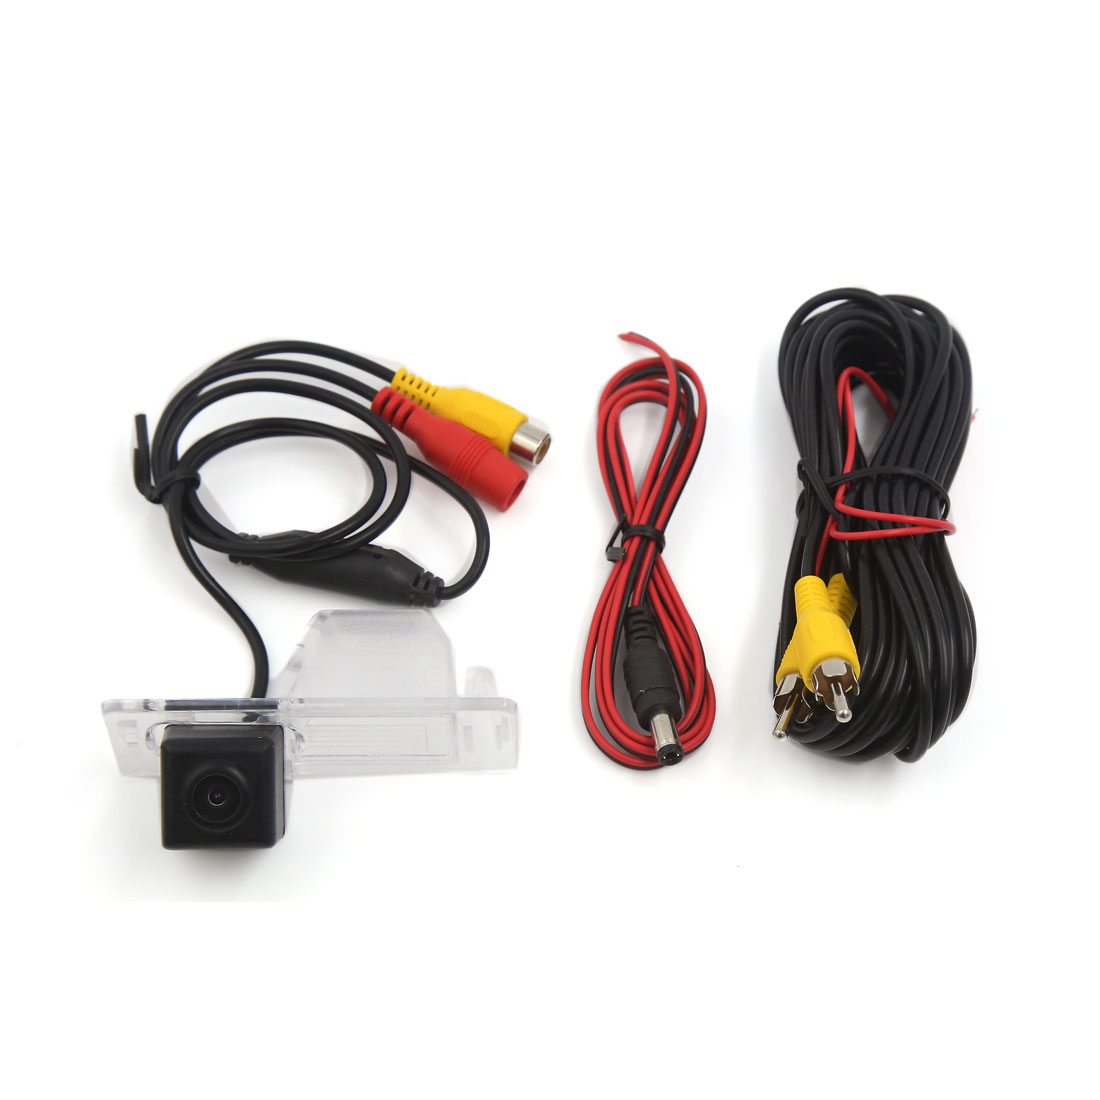 0Lux 170 Degree 600 TVL CCD Rear View Reverse Backup Parking Camera for Lacrosse